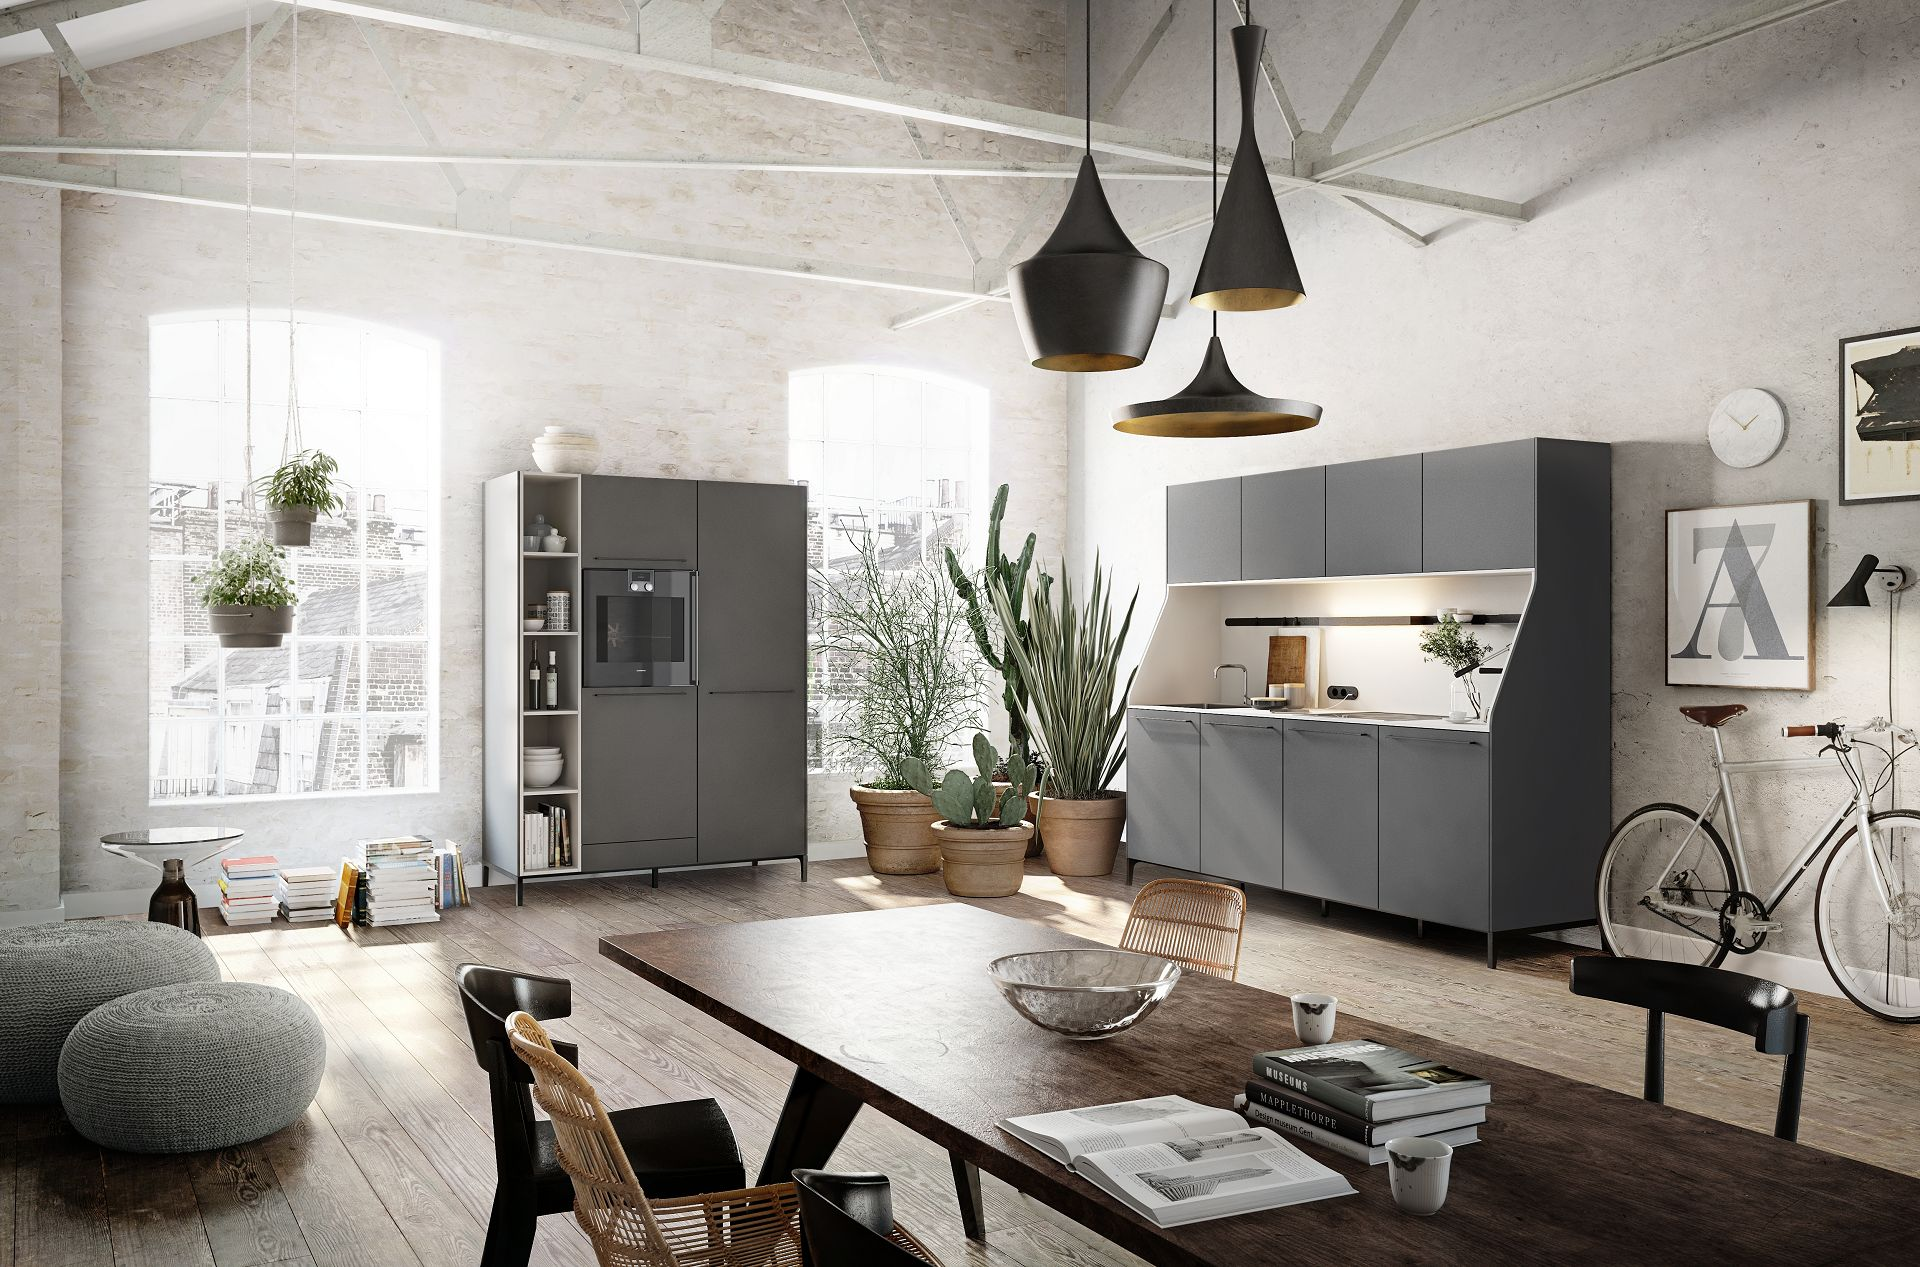 Uncategorized Urban Kitchen Design siematic urban kitchen design without dictates or limits the new interpretation of traditional buffet 29 won german award